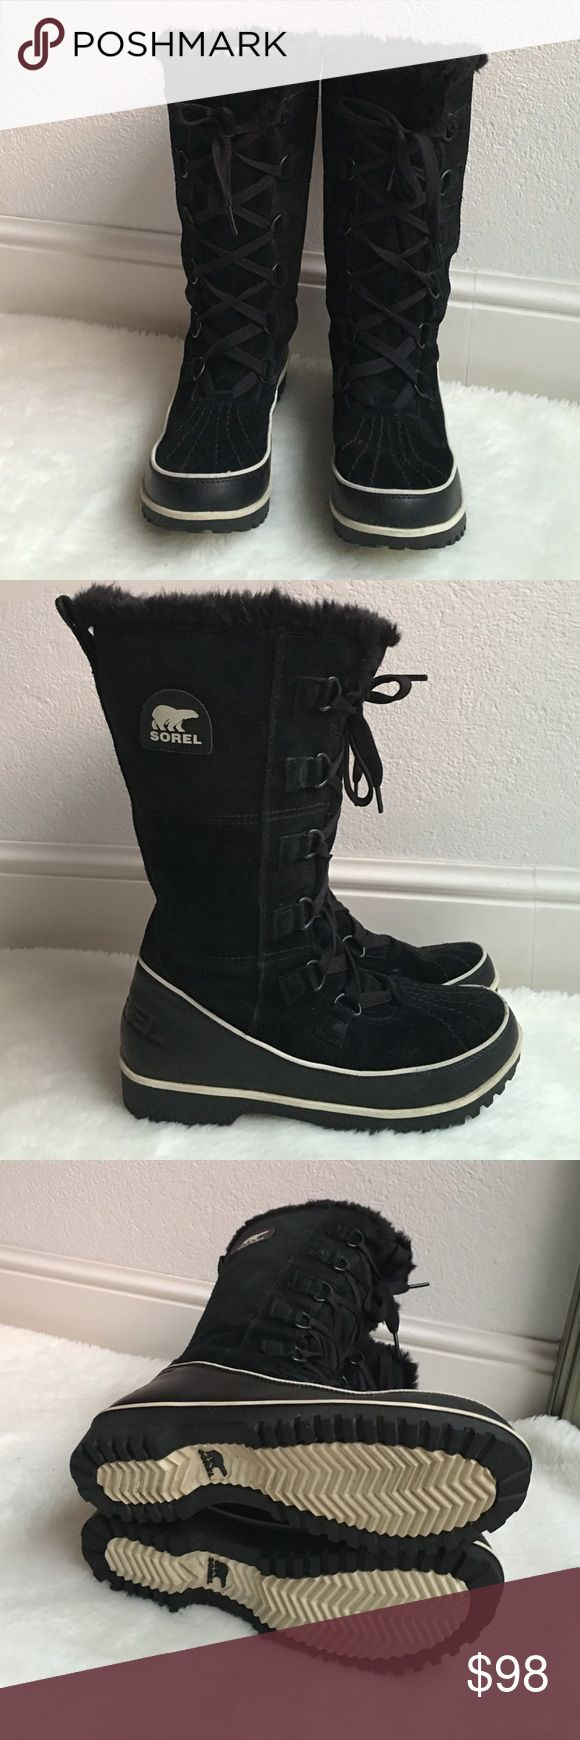 Sorel Tivoli High Winter Boots in Black size 8 Preowned worn once Sorel Tivoli High Winter Boots in Black size 8. Please look at pictures for better reference. Happy shopping! Sorel Shoes Winter & Rain Boots